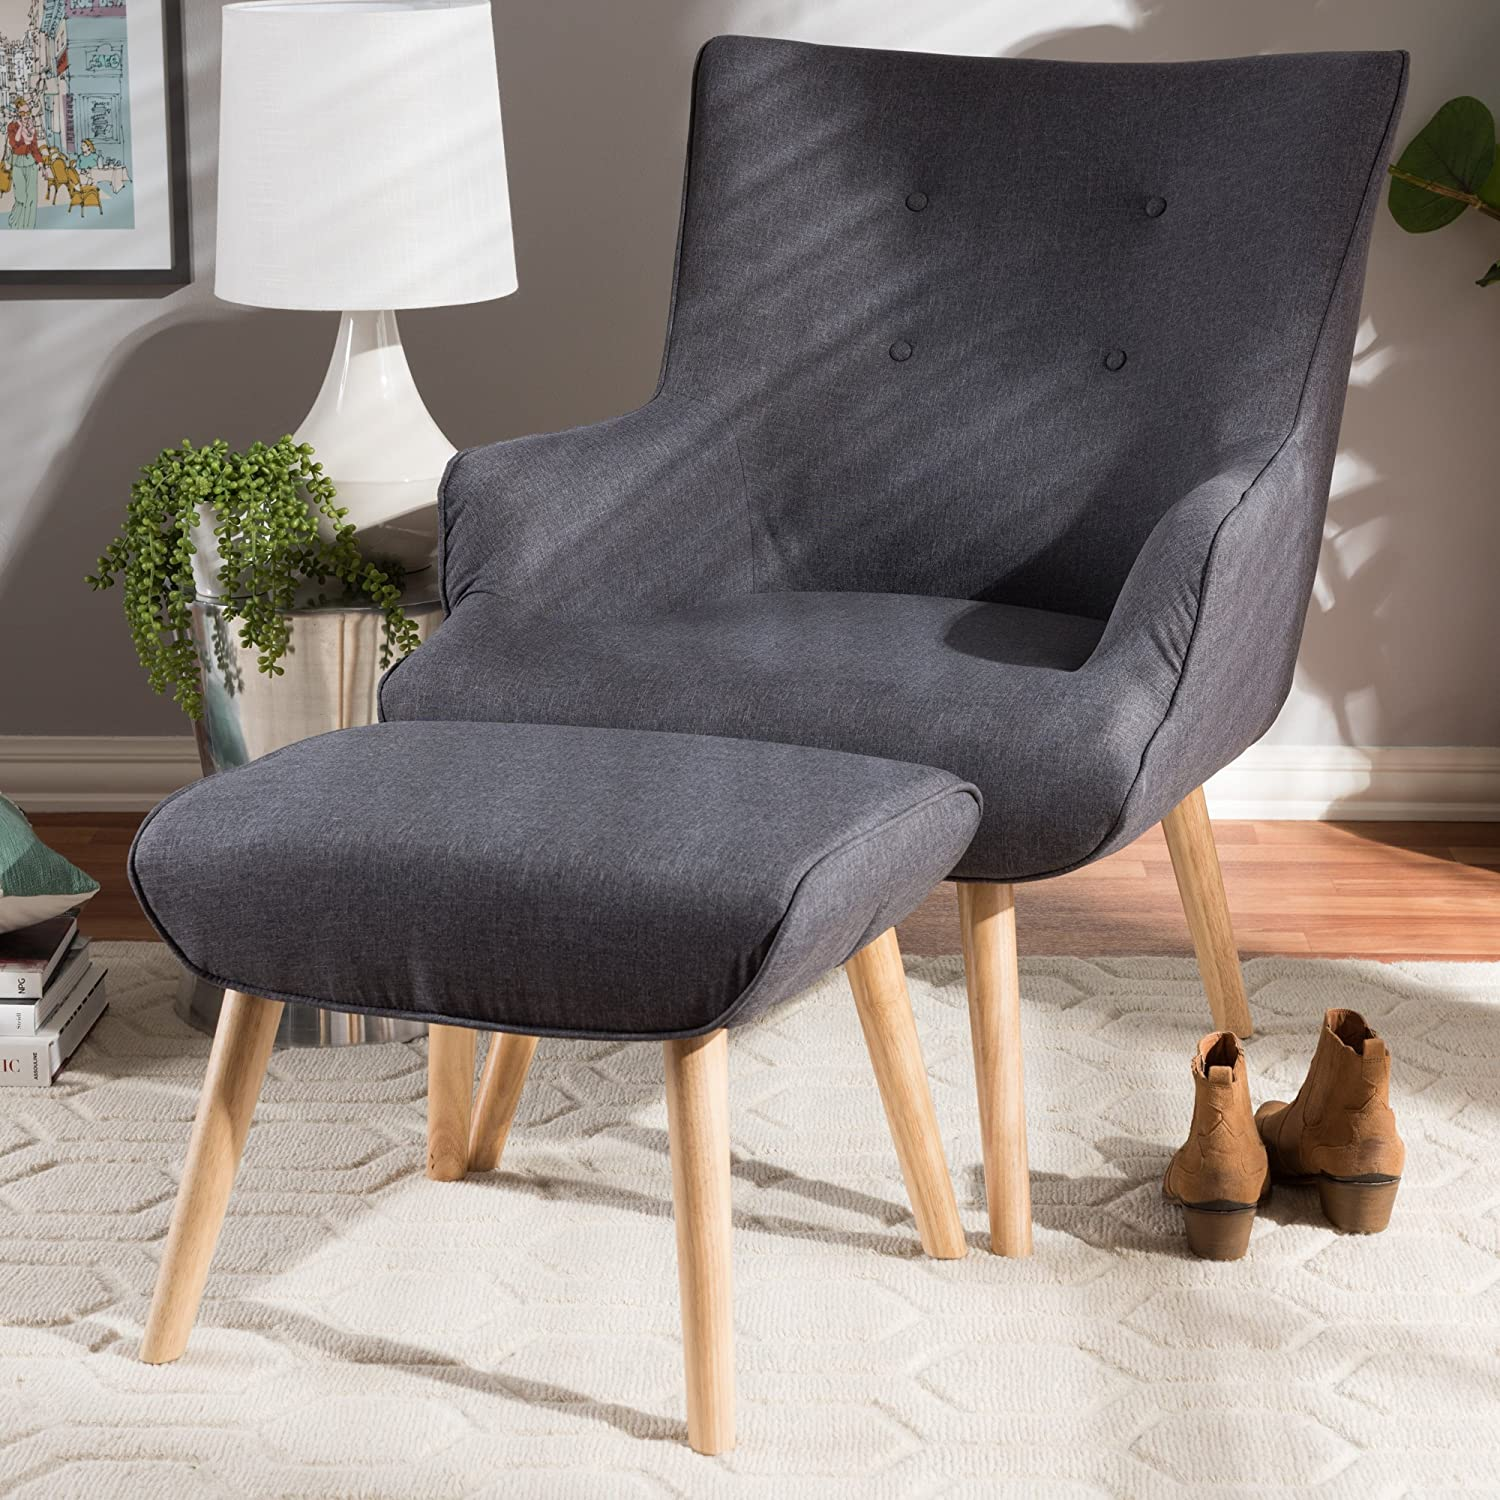 "Baxton Studio Alden Mid-Century Modern Dark Grey Fabric Upholstered Natural Finished Wood Lounge Chair and Ottoman Set/Mid-Century/Grey/Light Wood/Fabric Polyester 100""/Rubber Wood/Foam"